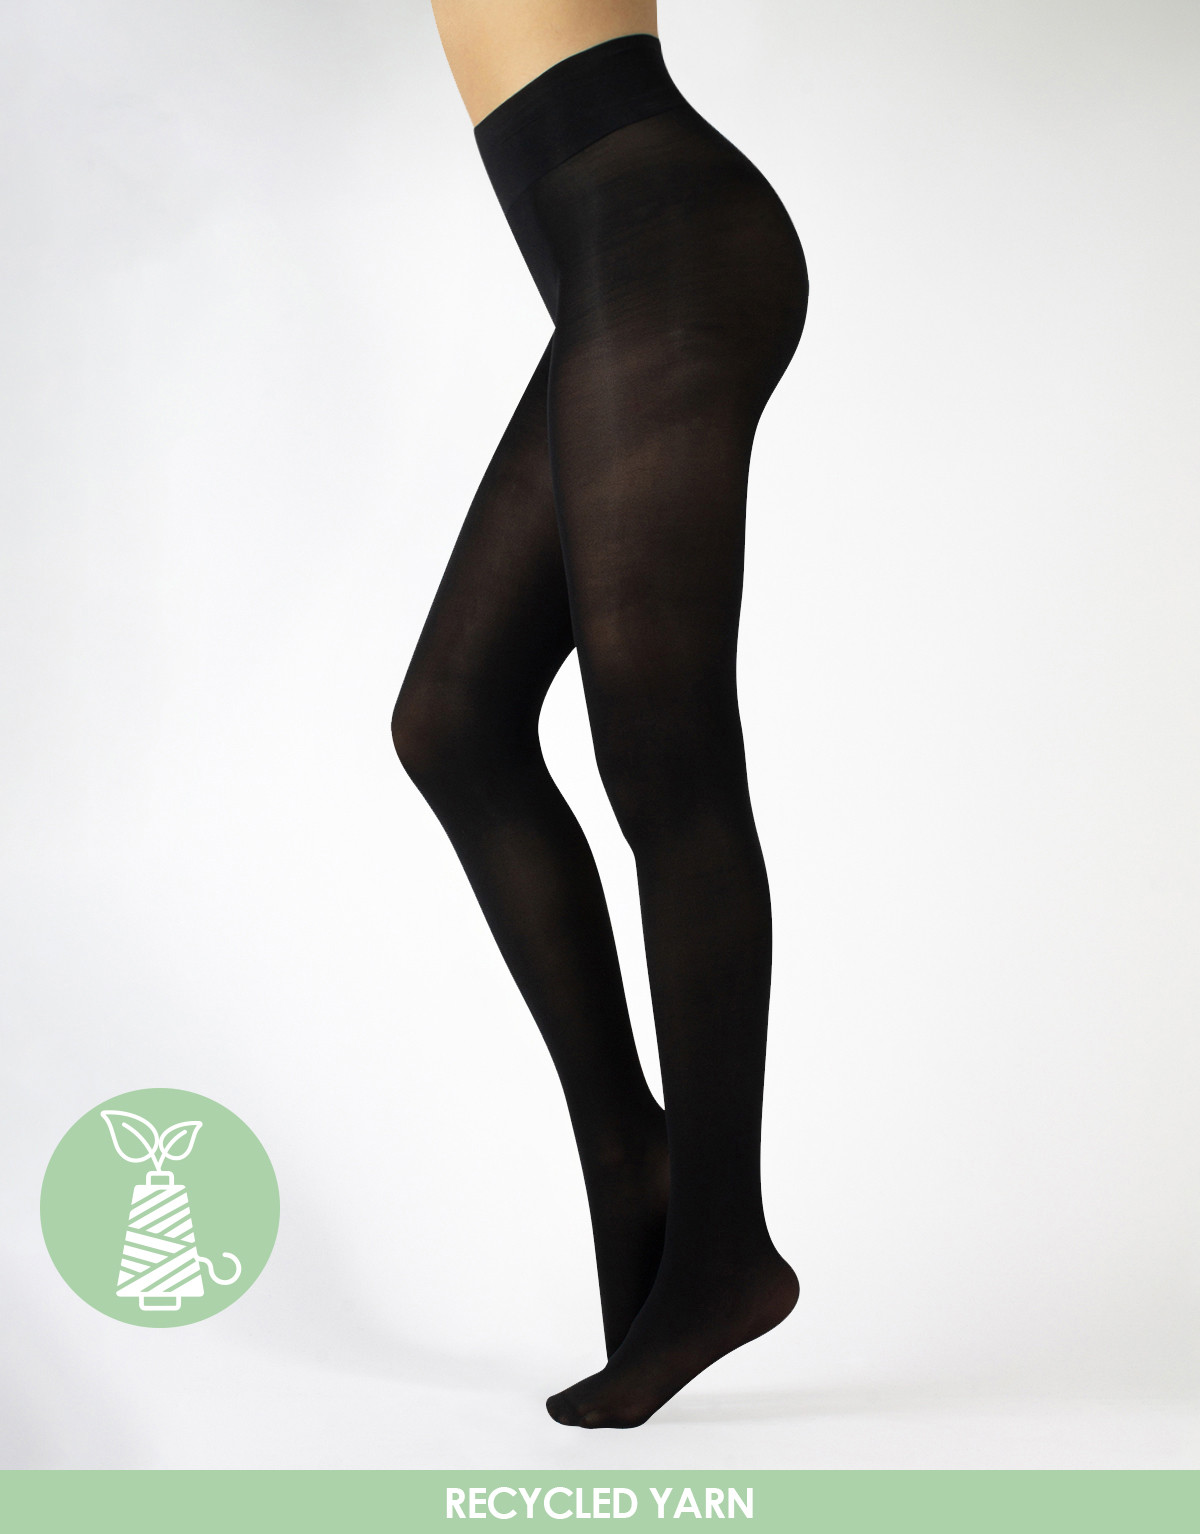 OPAQUE TIGHTS MADE OF RECYCLED YARN QNOVA - 50 DEN